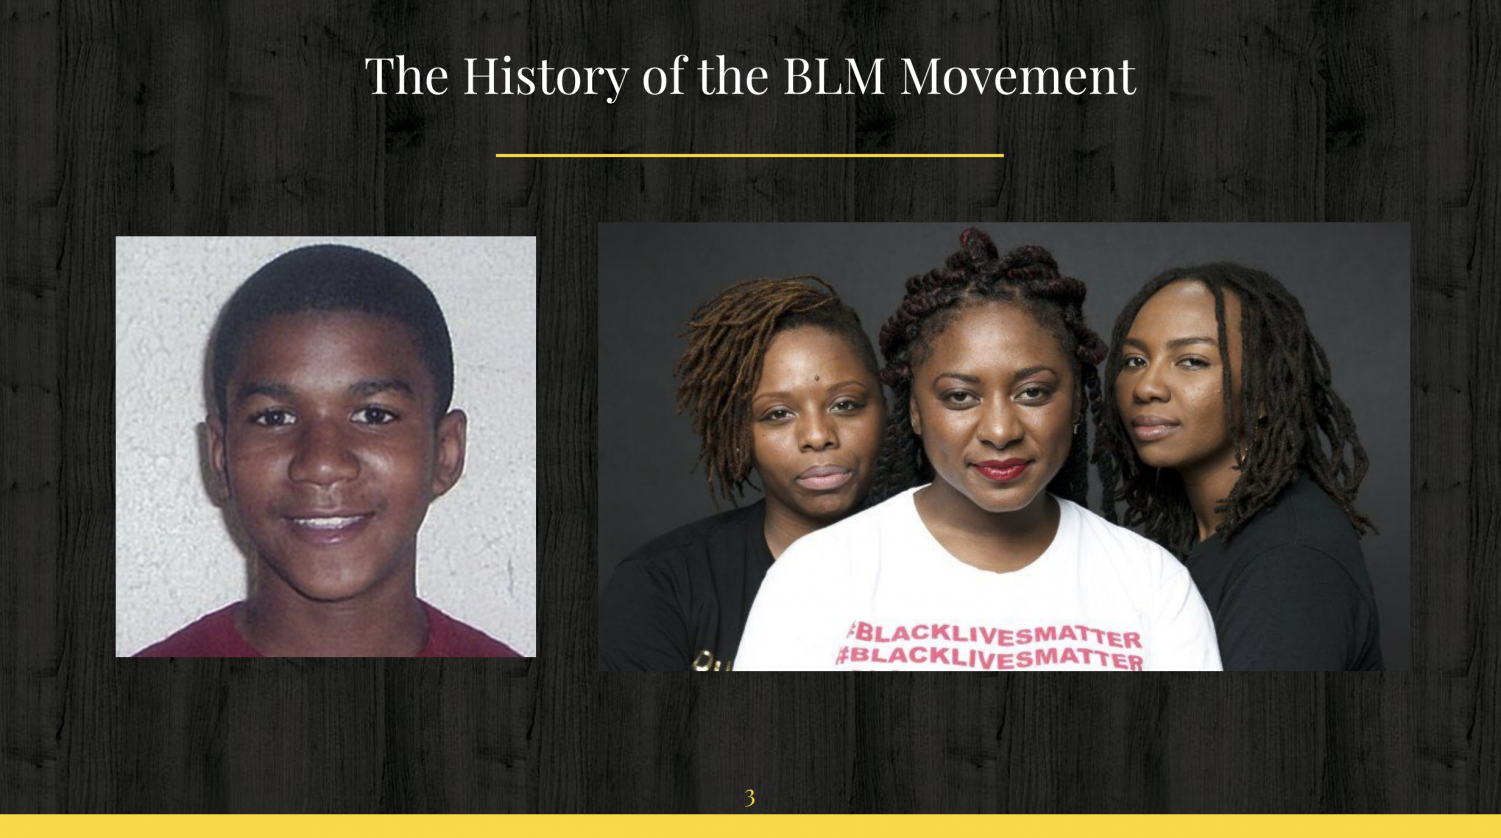 """In their first Summer Series forum, Unity Council representatives focused on the origins of the Black Lives Matter Movement and why """"All Lives Matter"""" is an inappropriate response."""